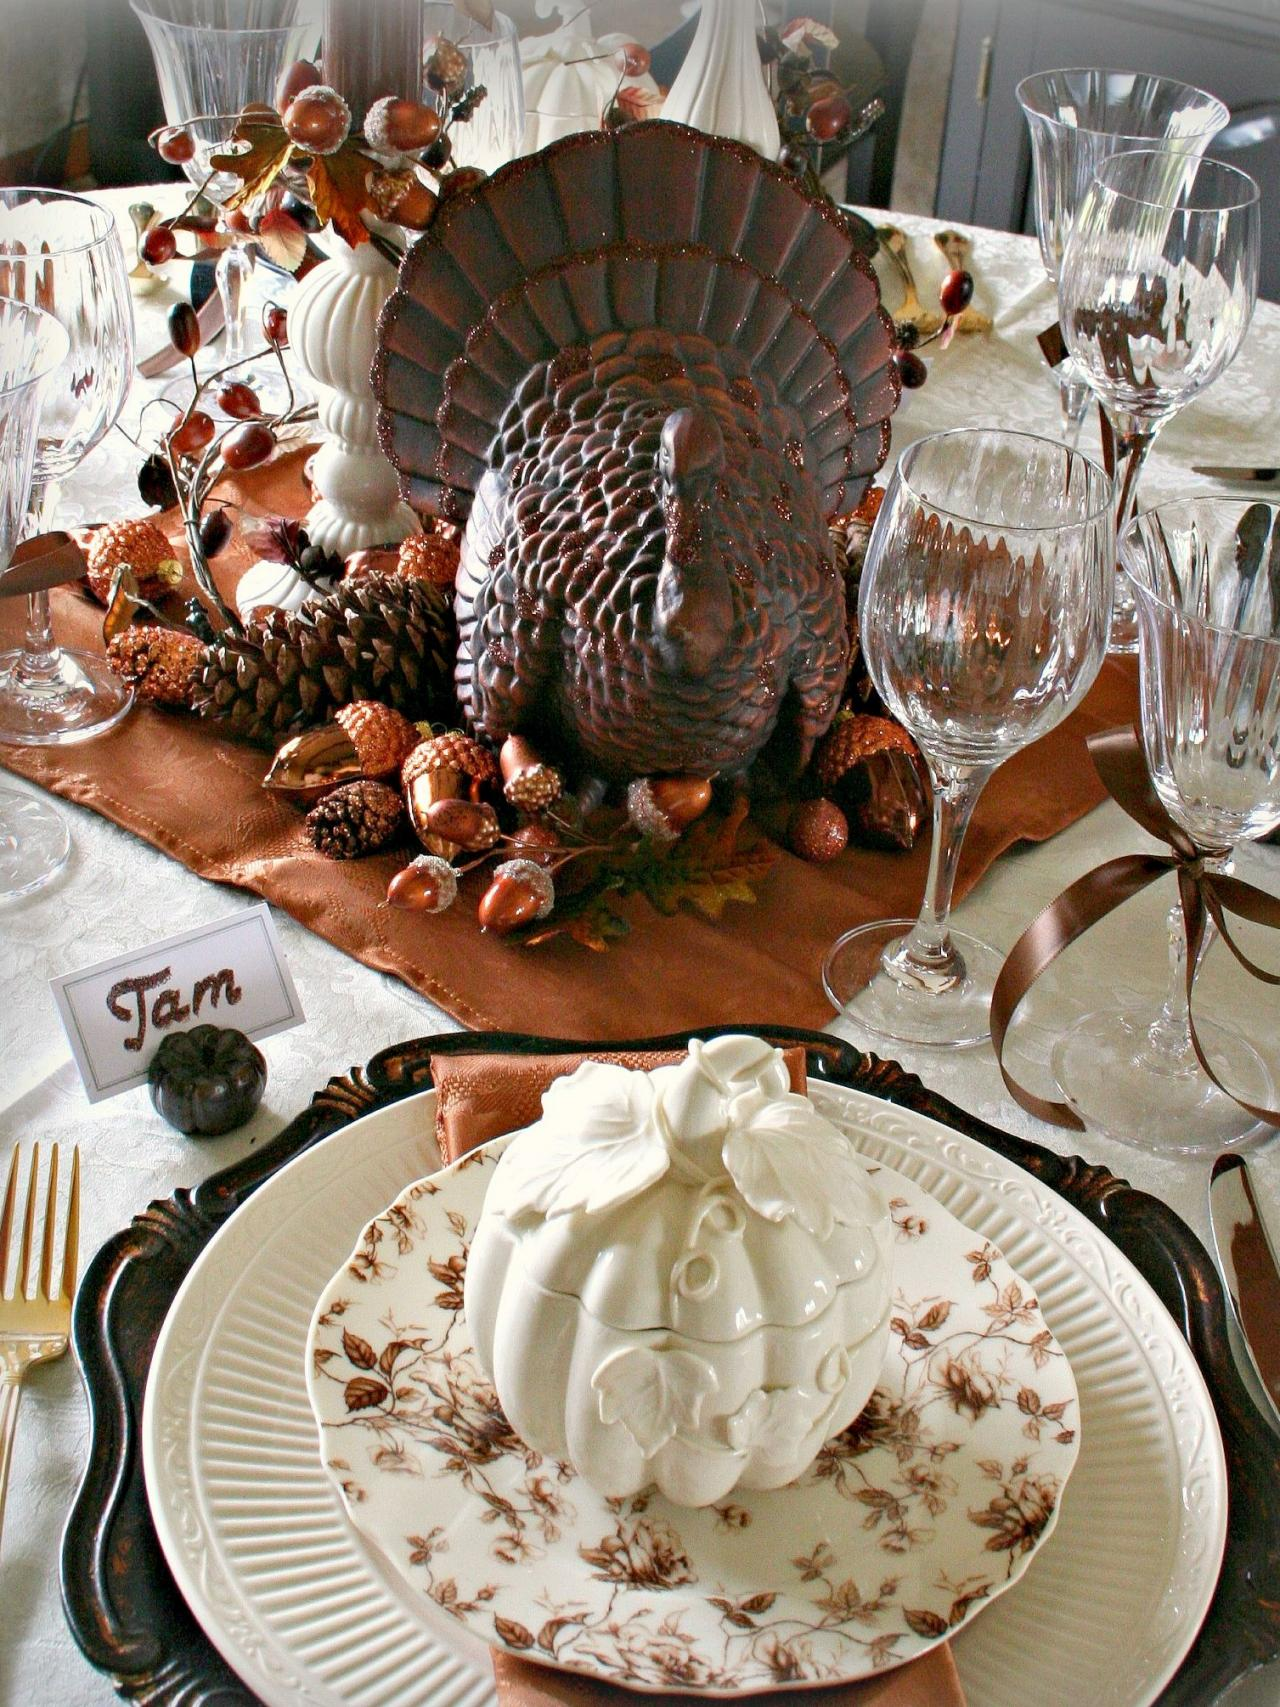 Thanksgiving Table Setting Ideas 2015 thanksgiving tablecloth and setting ideas | premier table